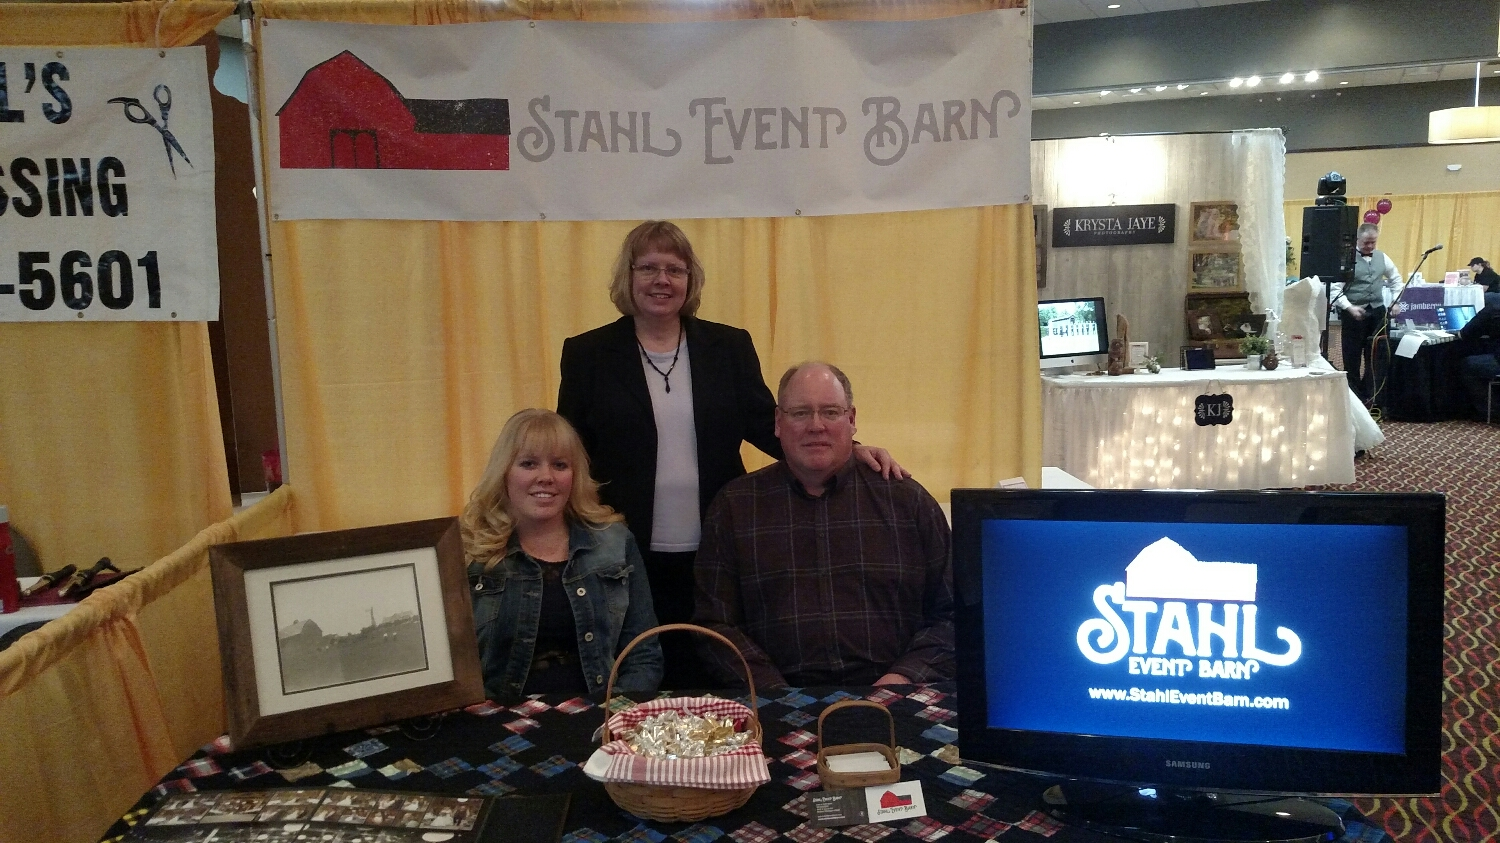 Julie, Ruth, and Ivan Stahl at the booth.